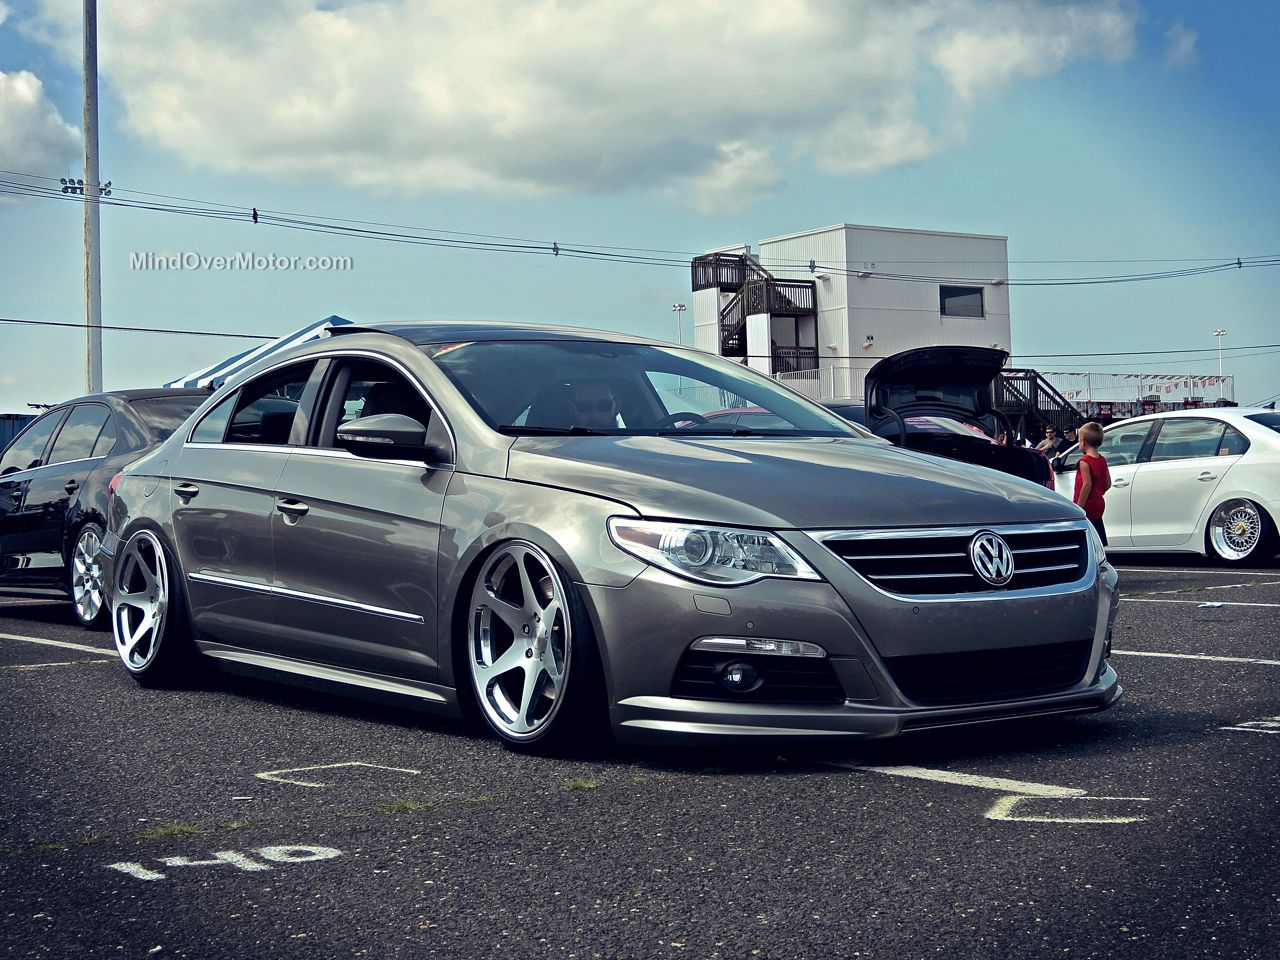 Waterfest 20 Slammed VW CC